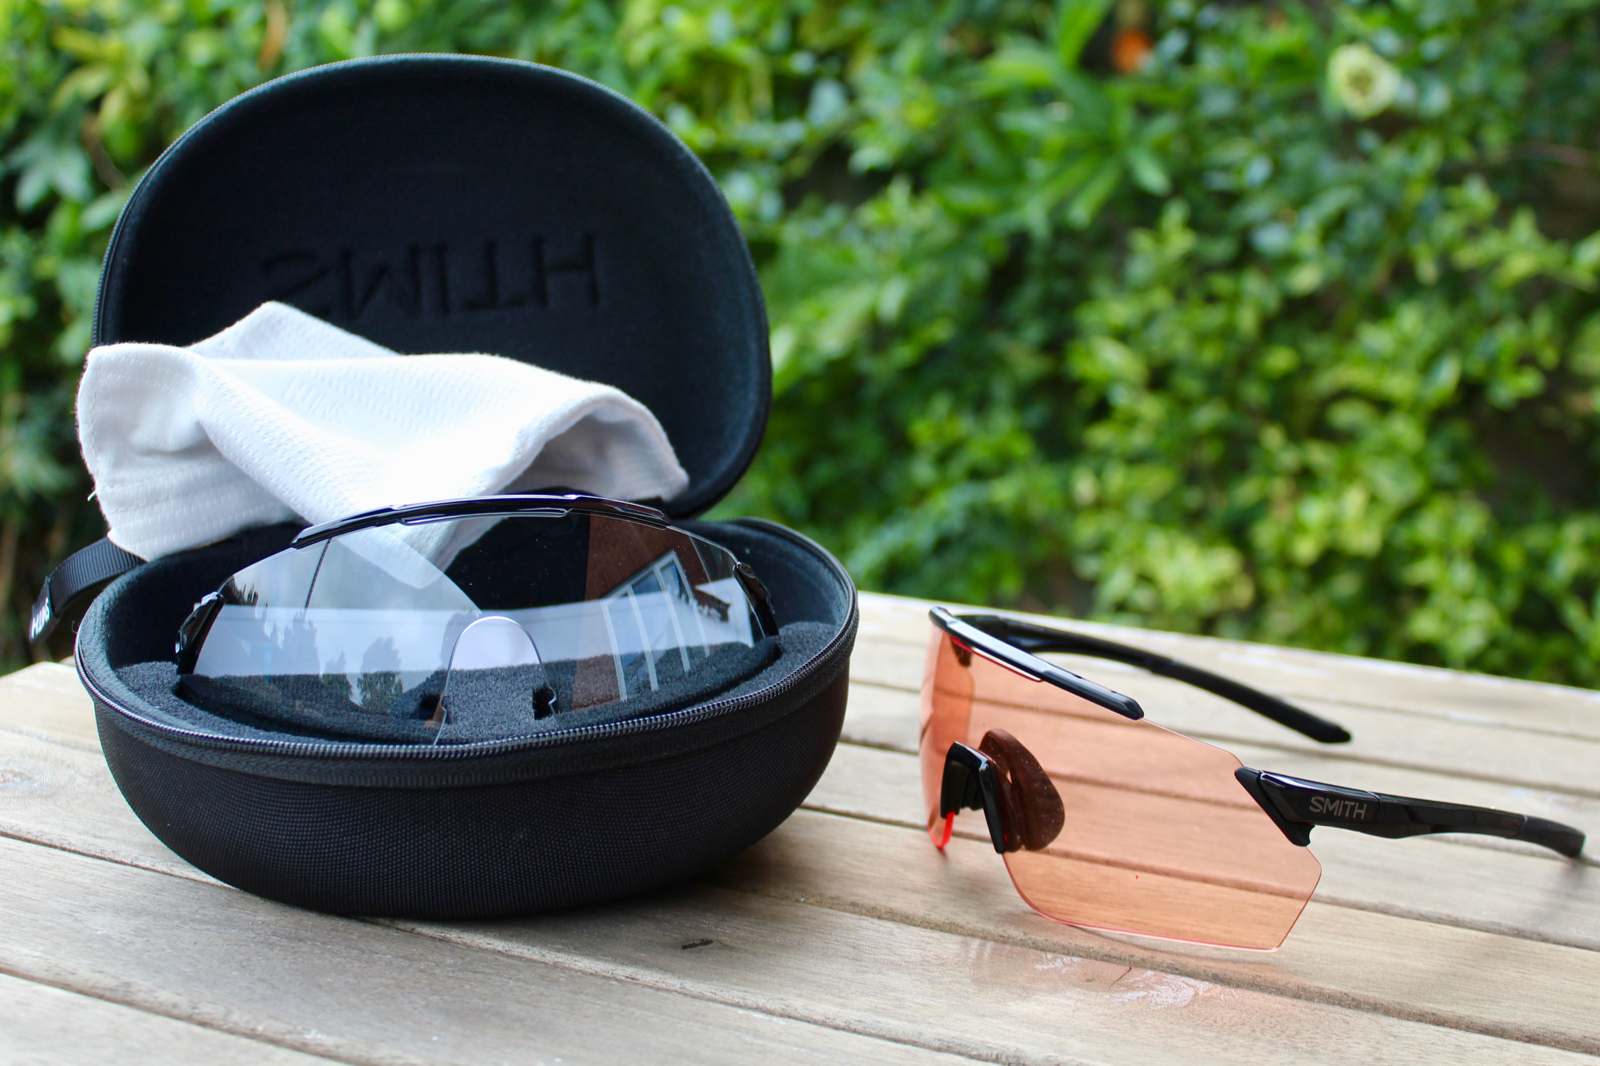 Review Smith Optics Ruckus Cycling Sunglasses